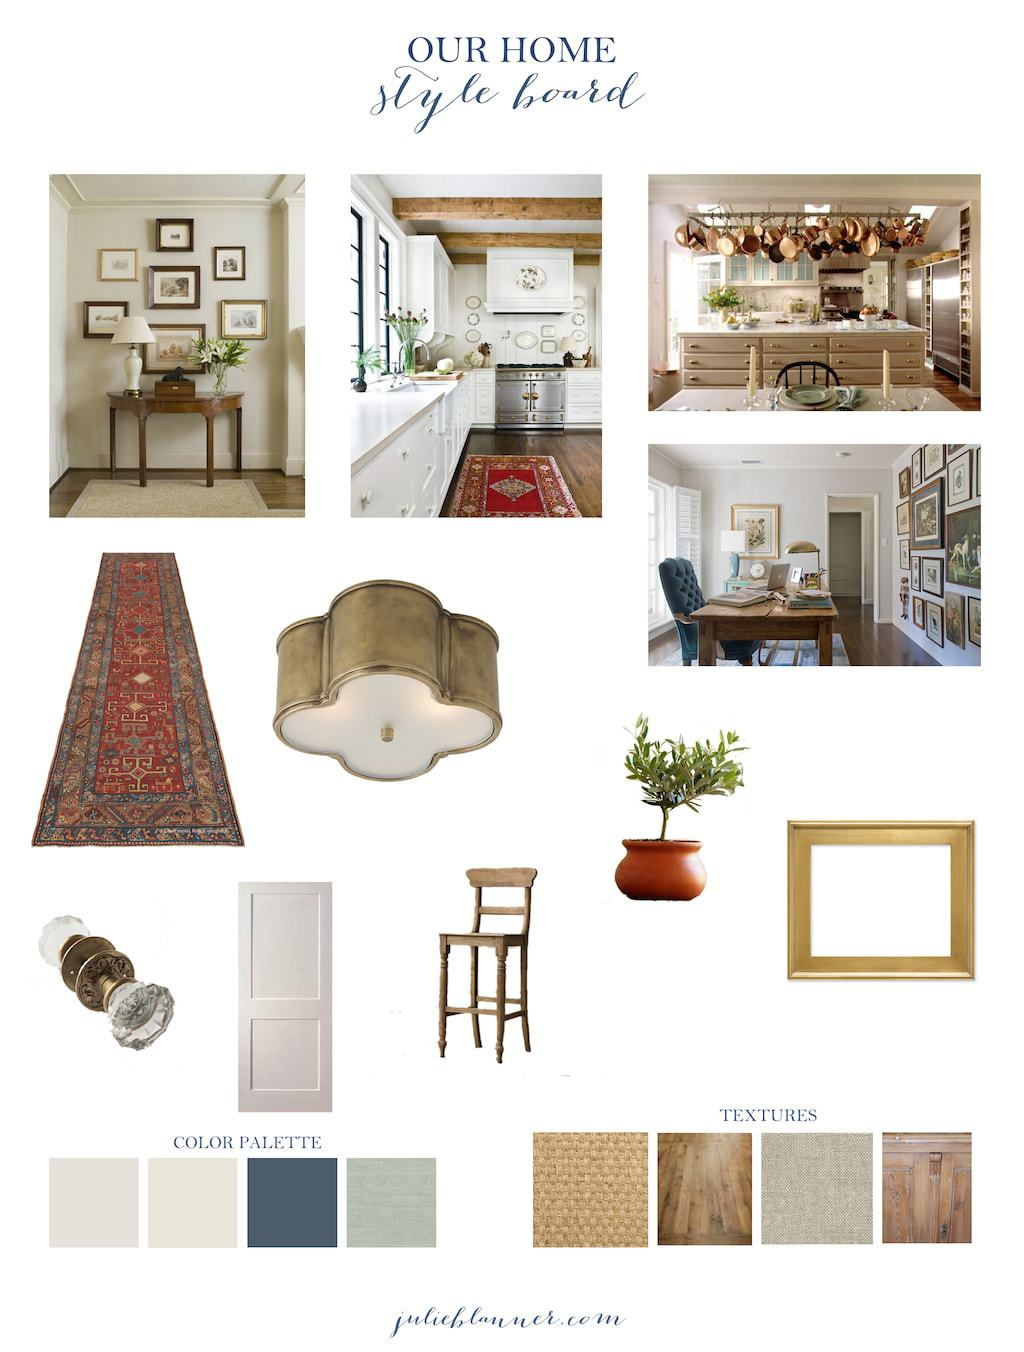 http://julieblanner.com/wp-content/uploads/2015/01/home-design-board.jpeg